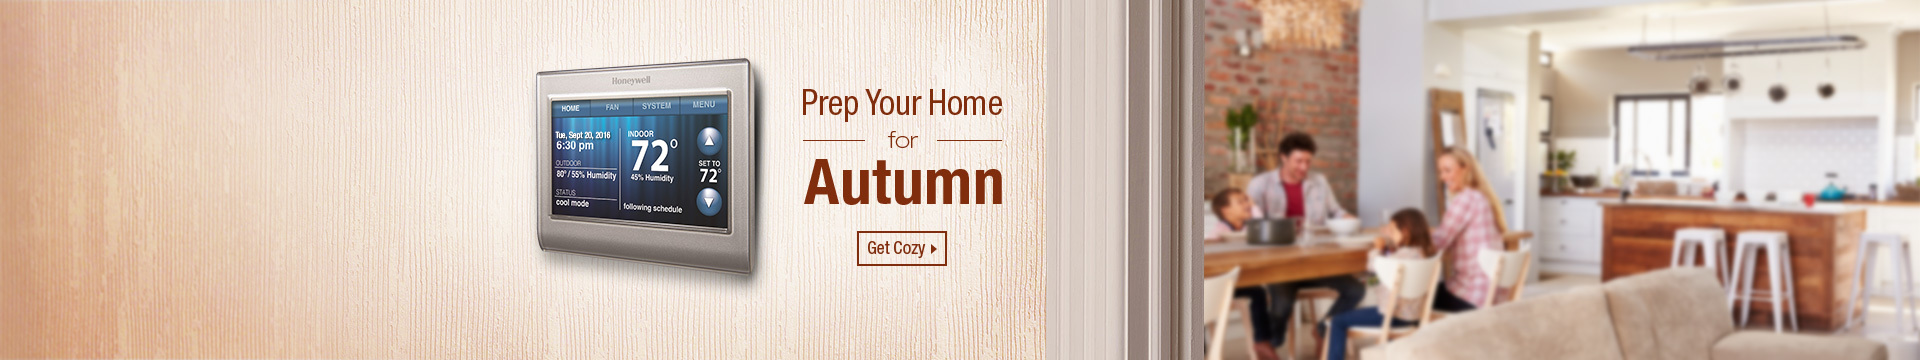 Prep Your Home for Autumn